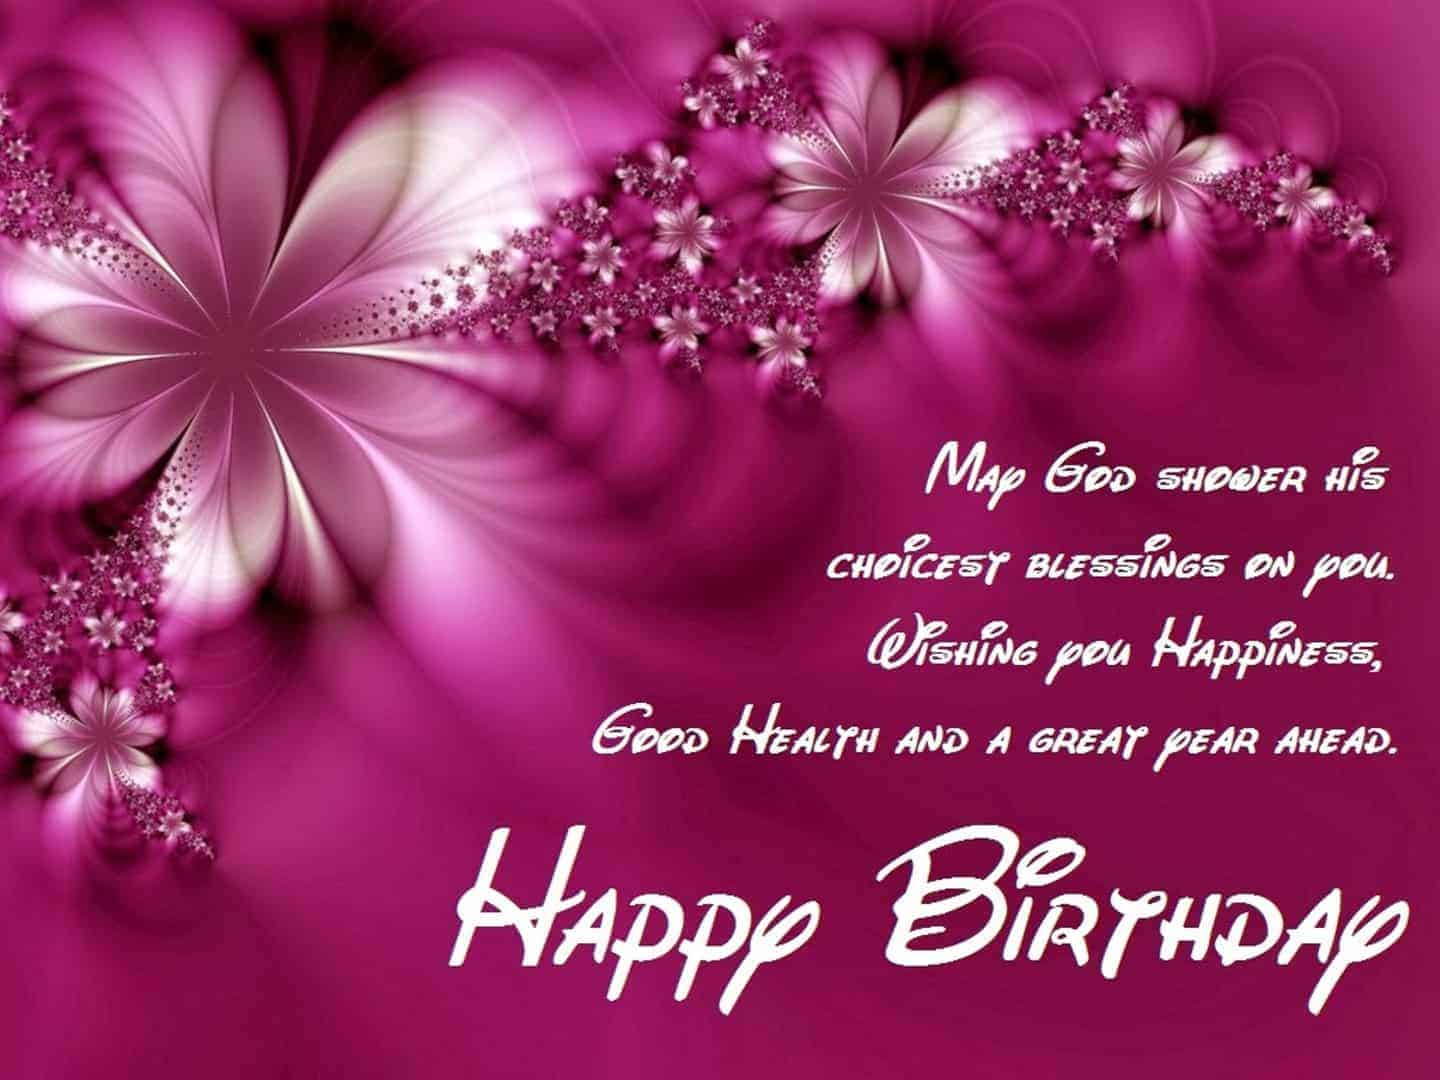 Birthday quotes with birthday quotes images loving happy birthday wishes cards m4hsunfo